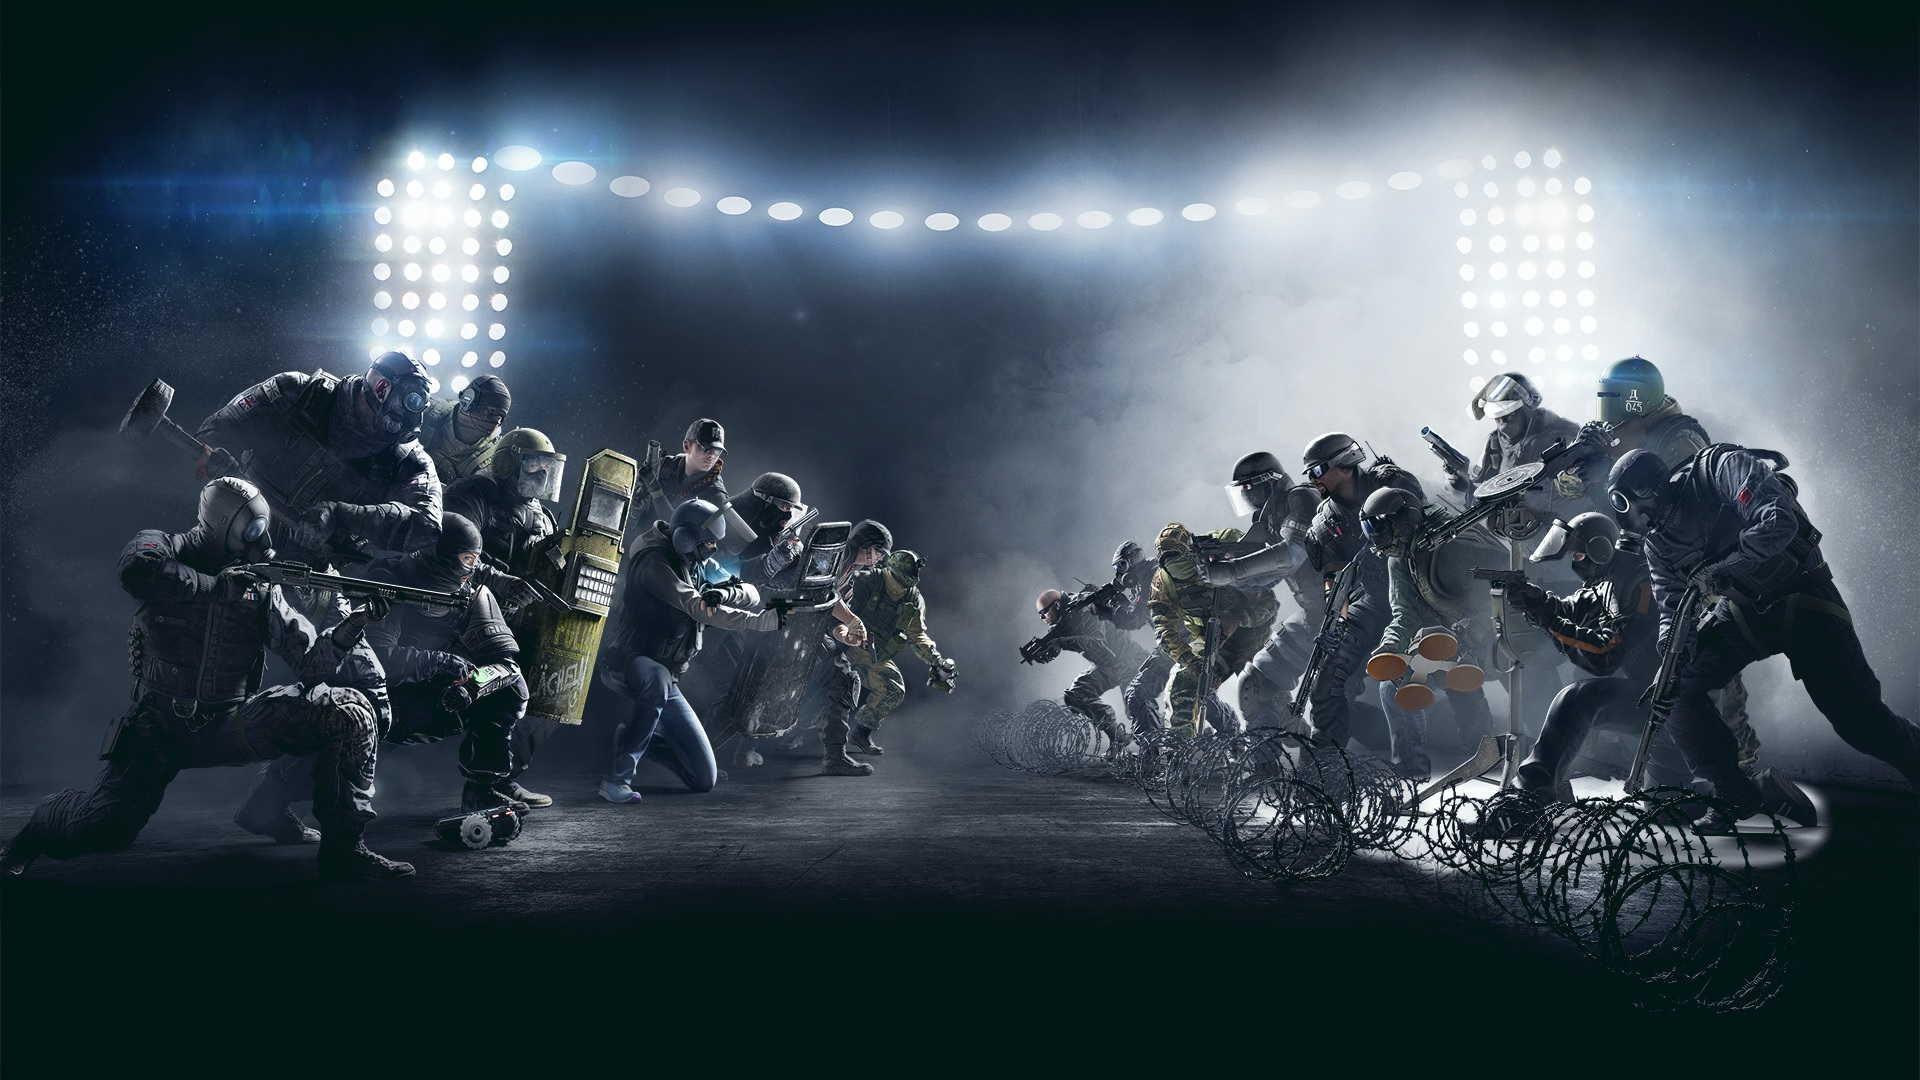 Two game modes have been cut from Rainbow Six Siege's ranked queues